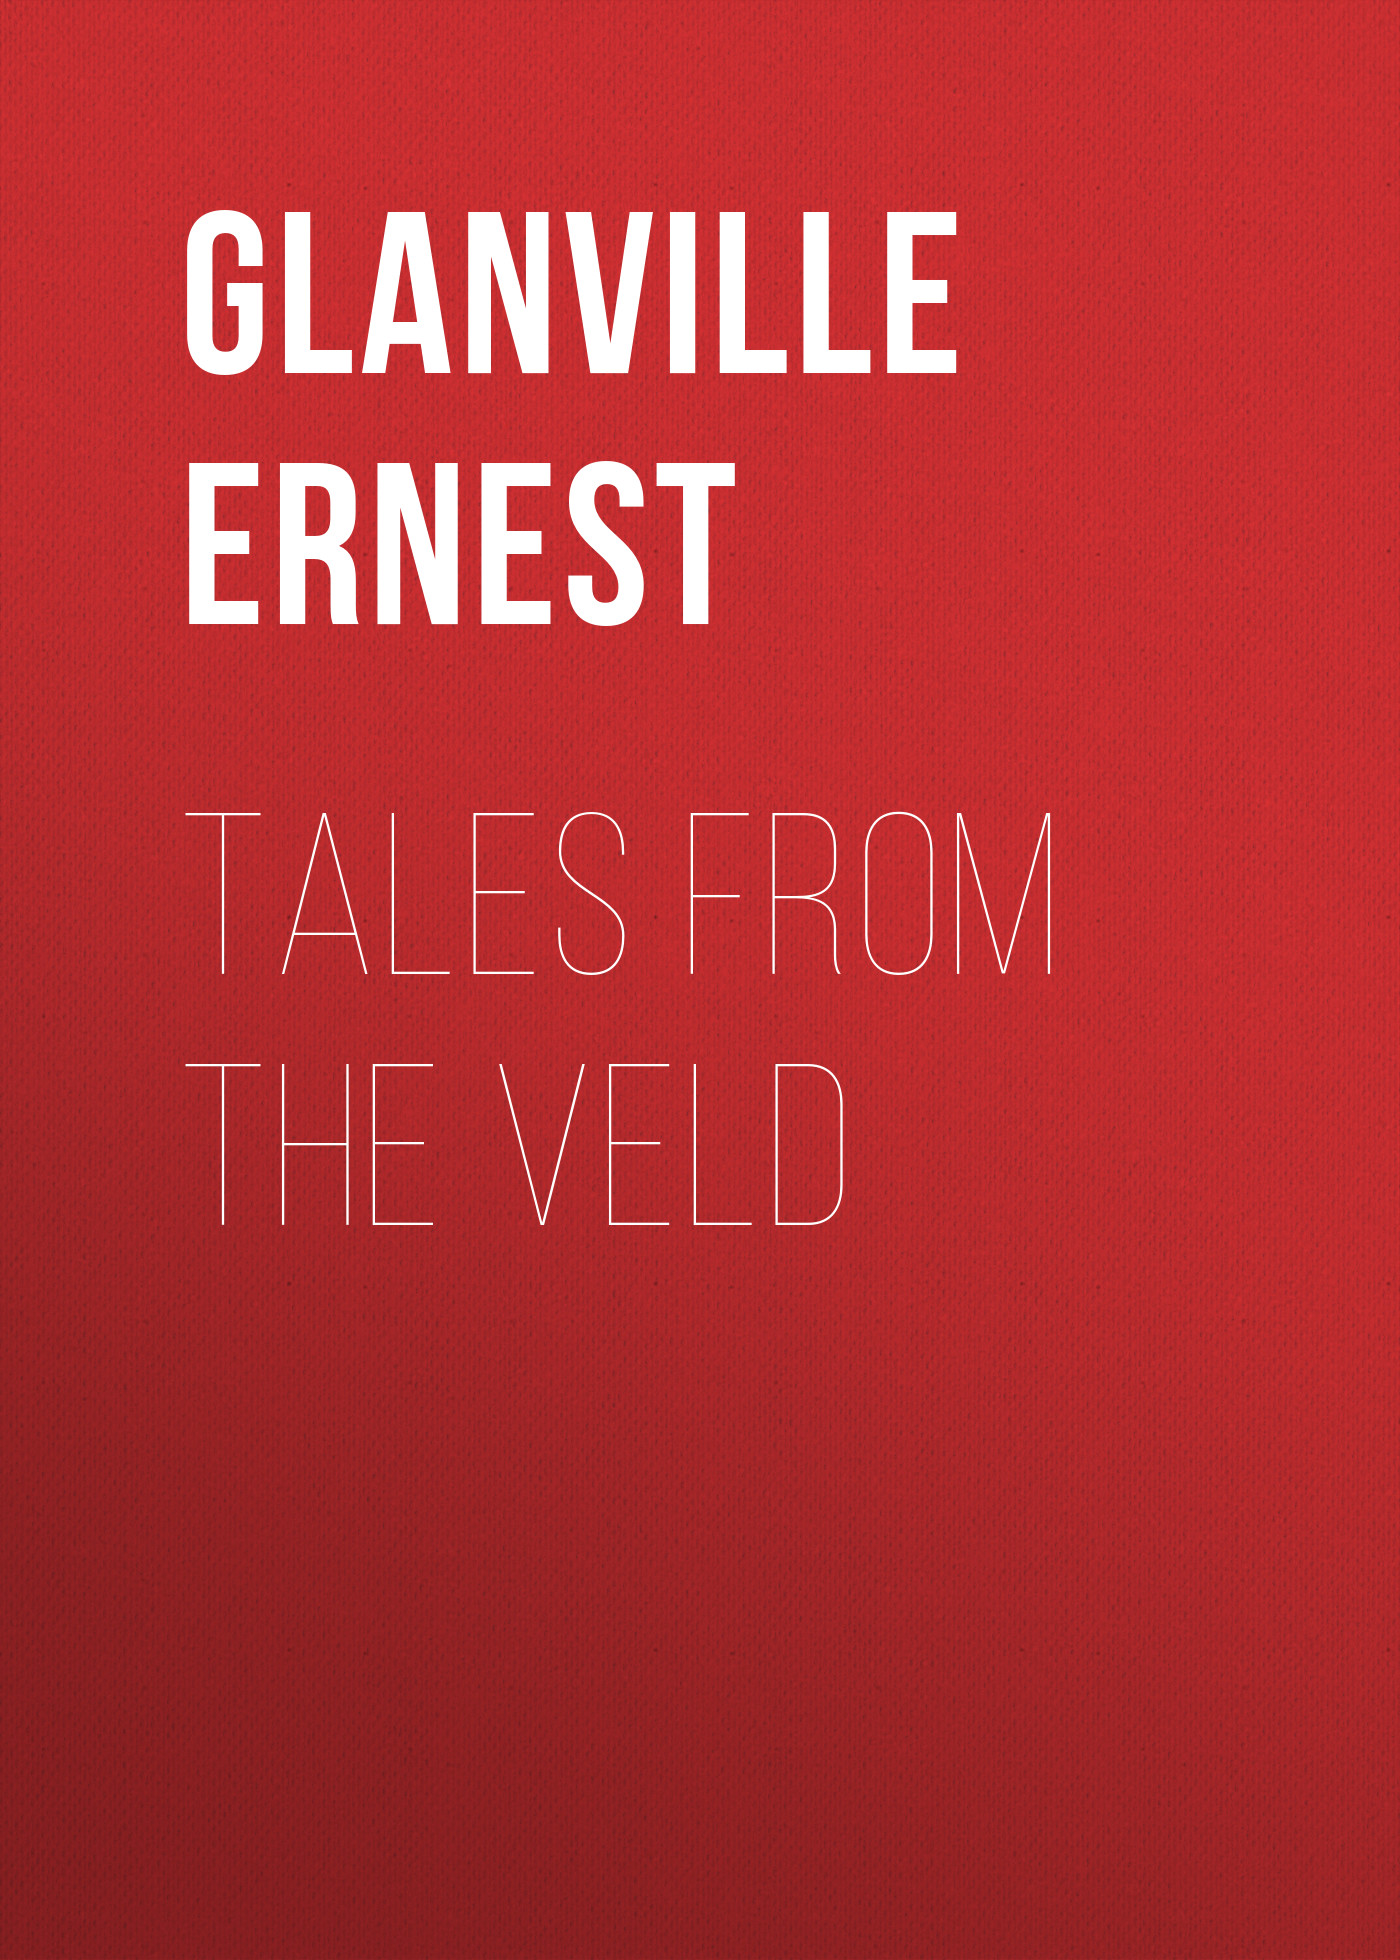 Glanville Ernest Tales from the Veld цена 2017